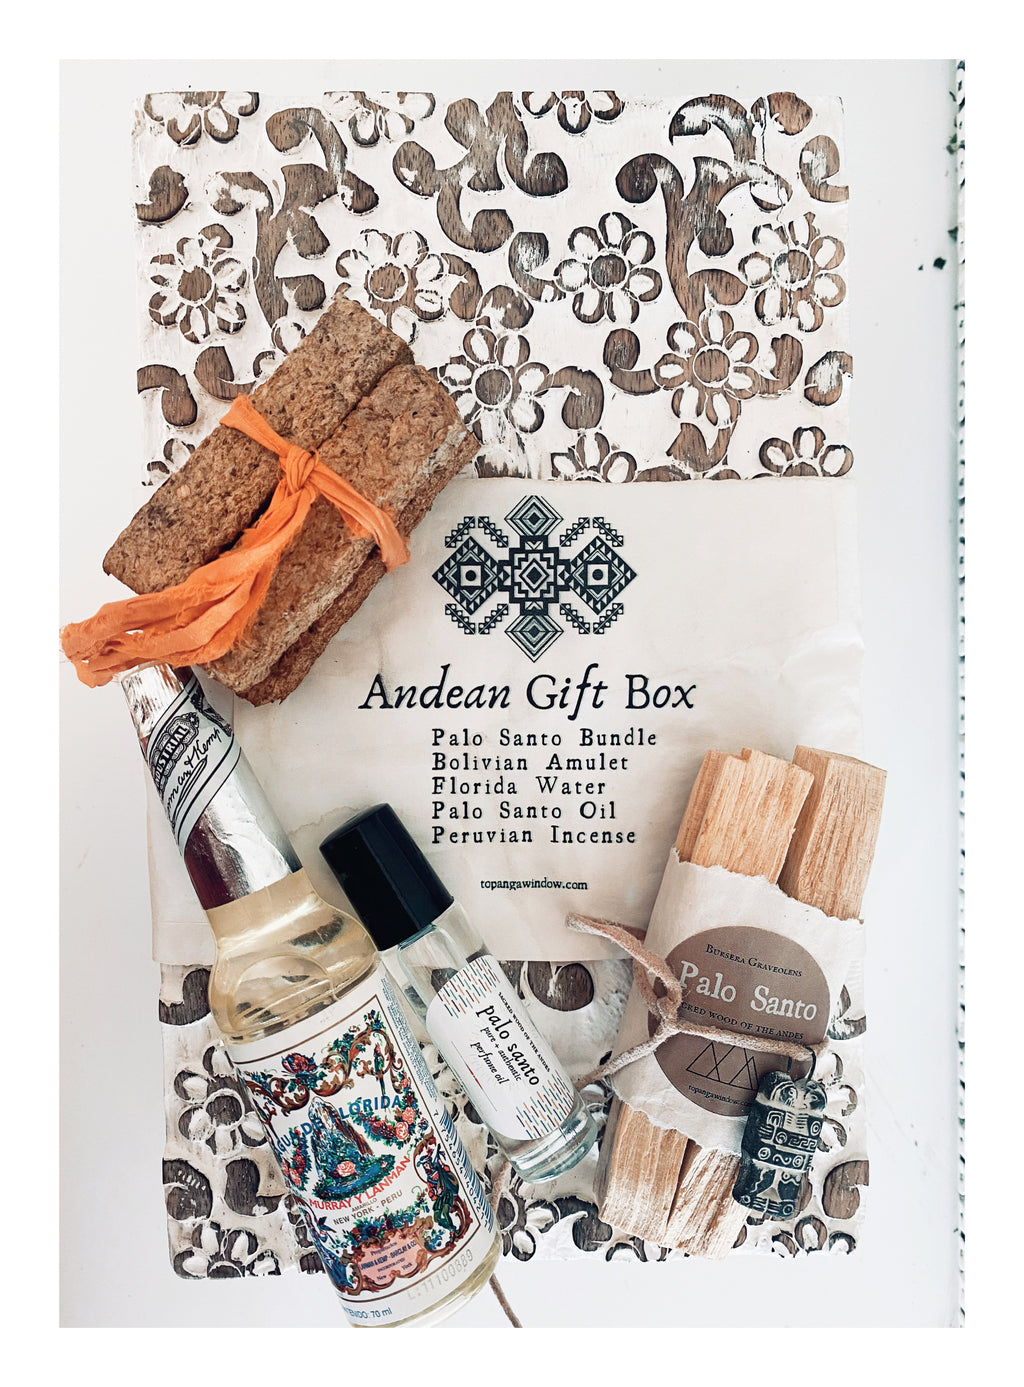 ANDEAN GIFT BOX